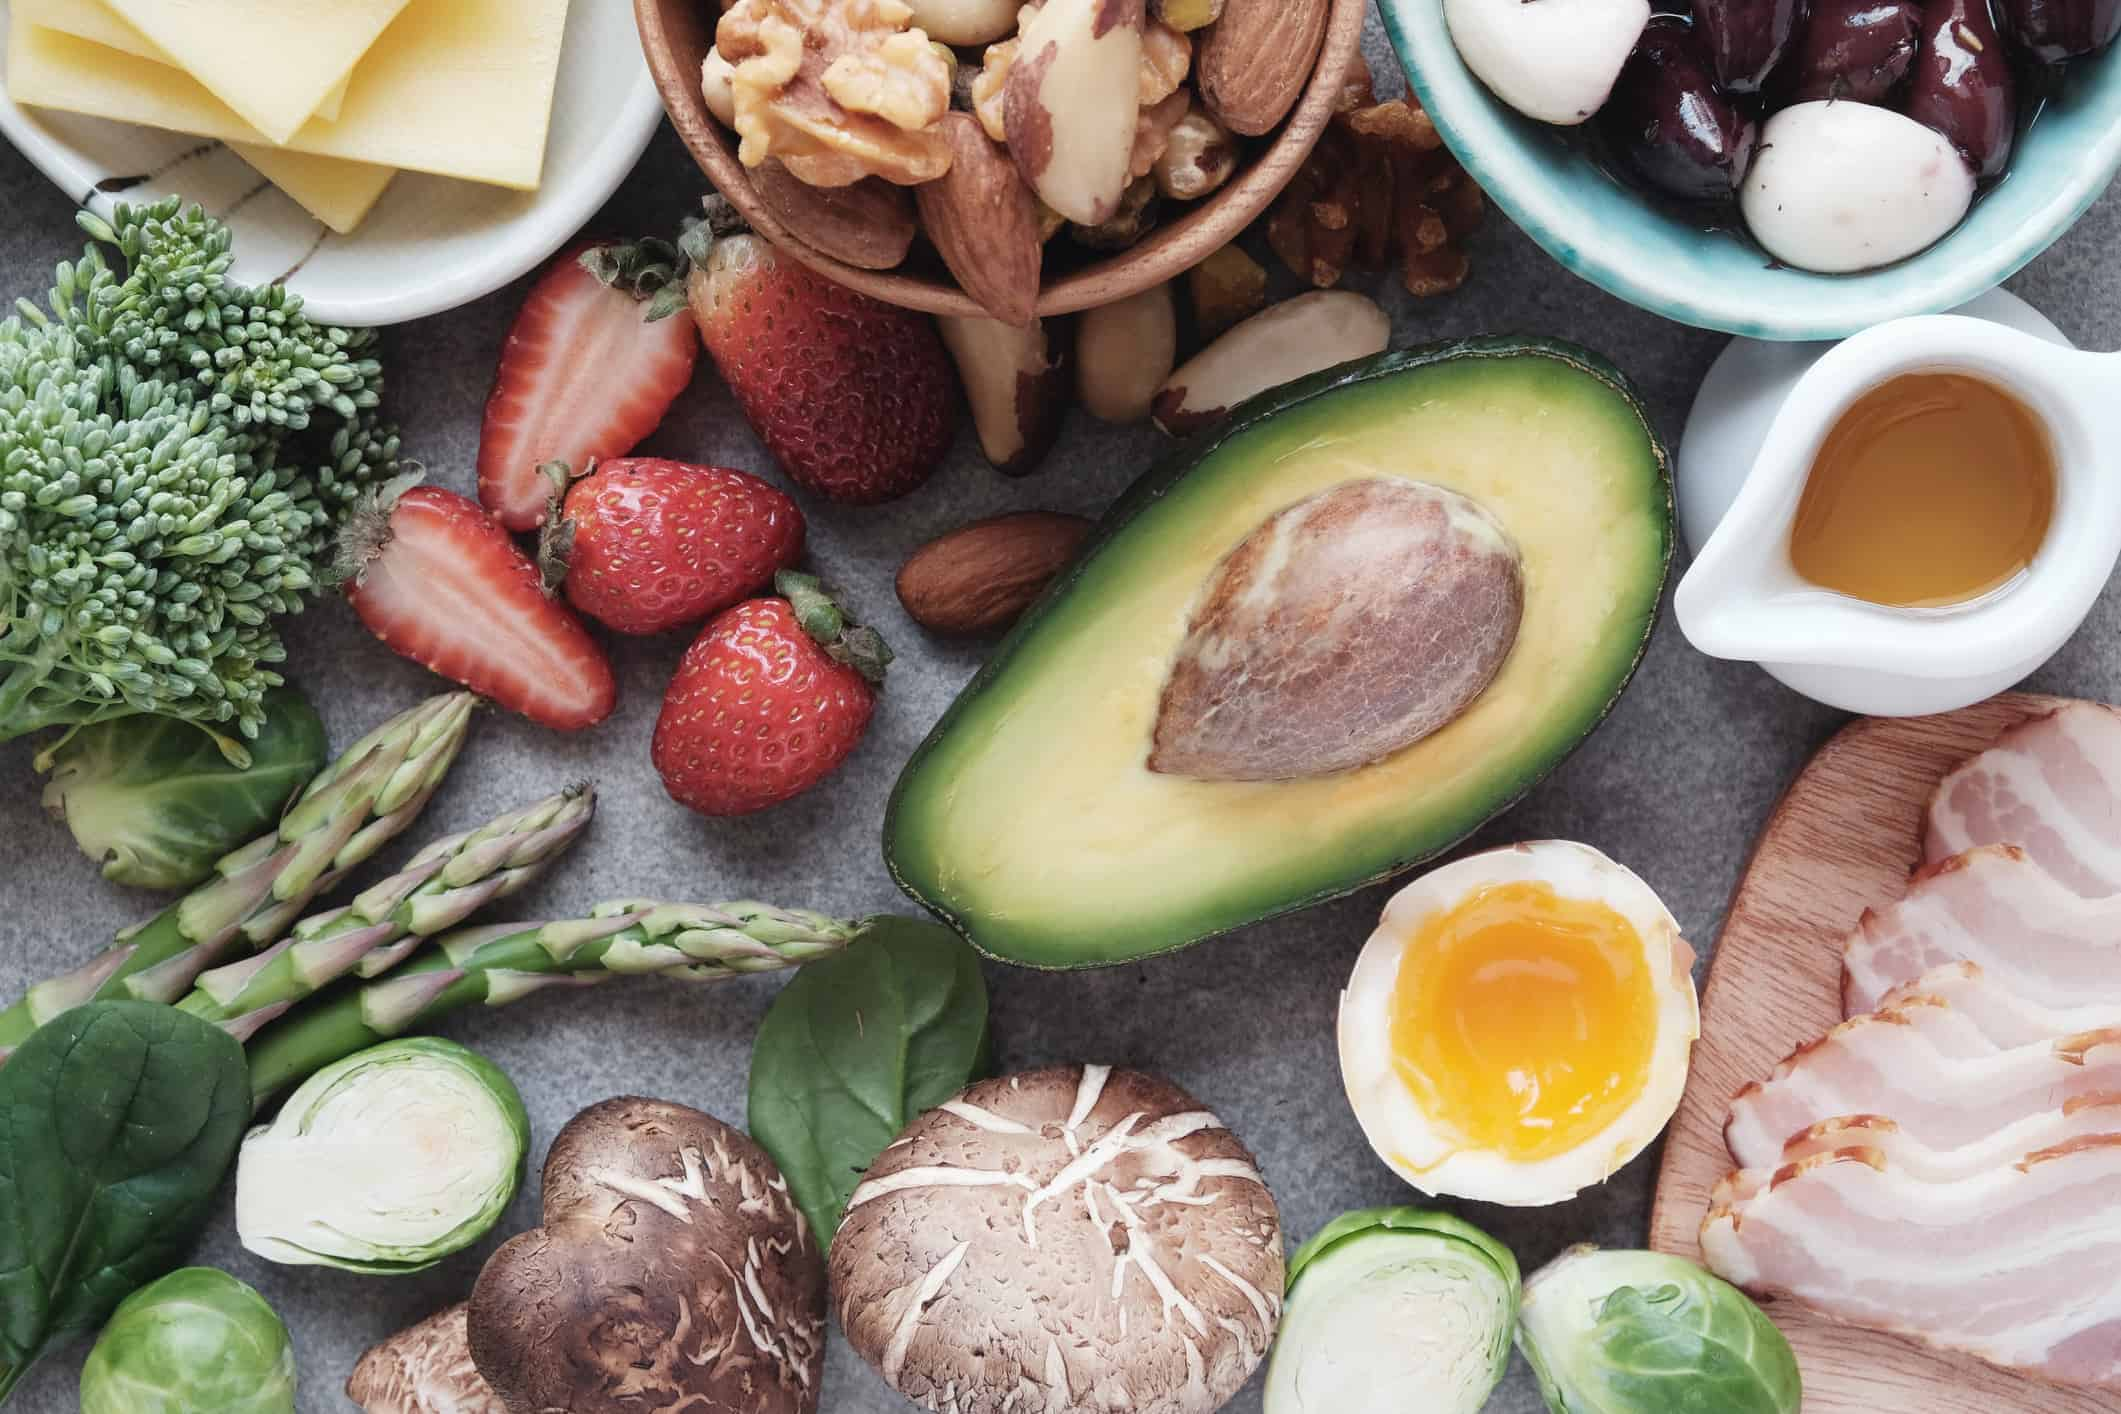 The Ketogenic Diet mindbodysoul